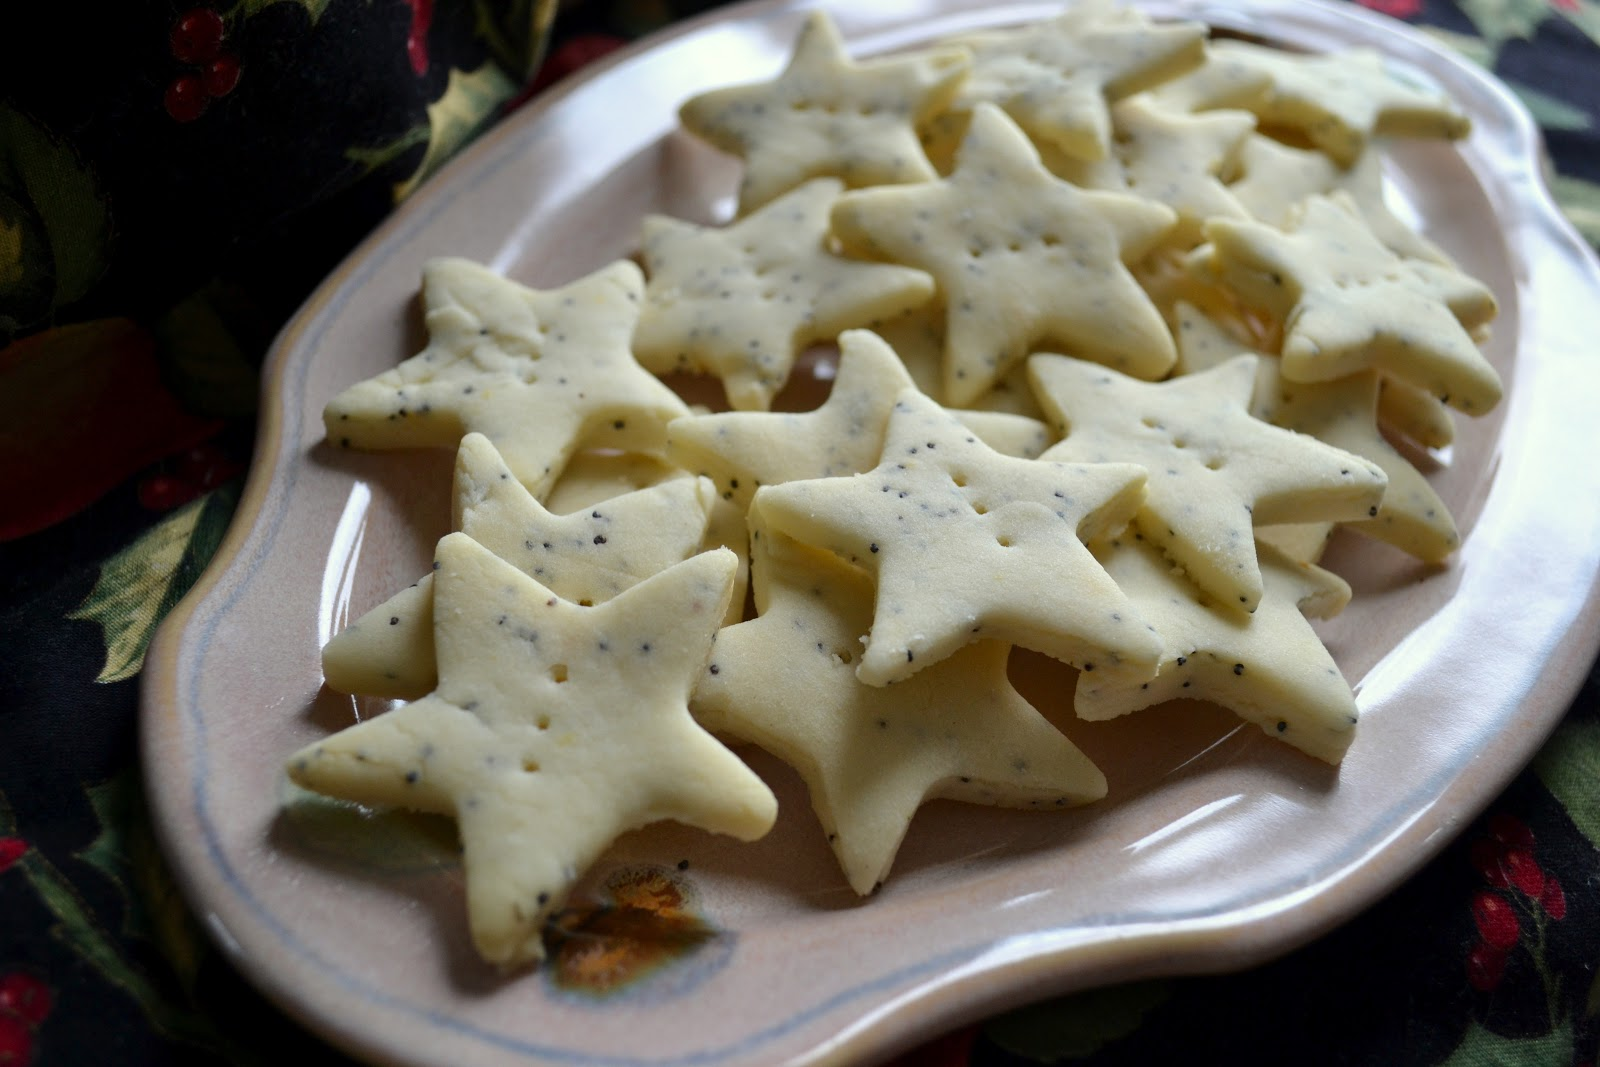 ... Kitchen: of vegan creations: Lemony poppy seed shortbread cookies